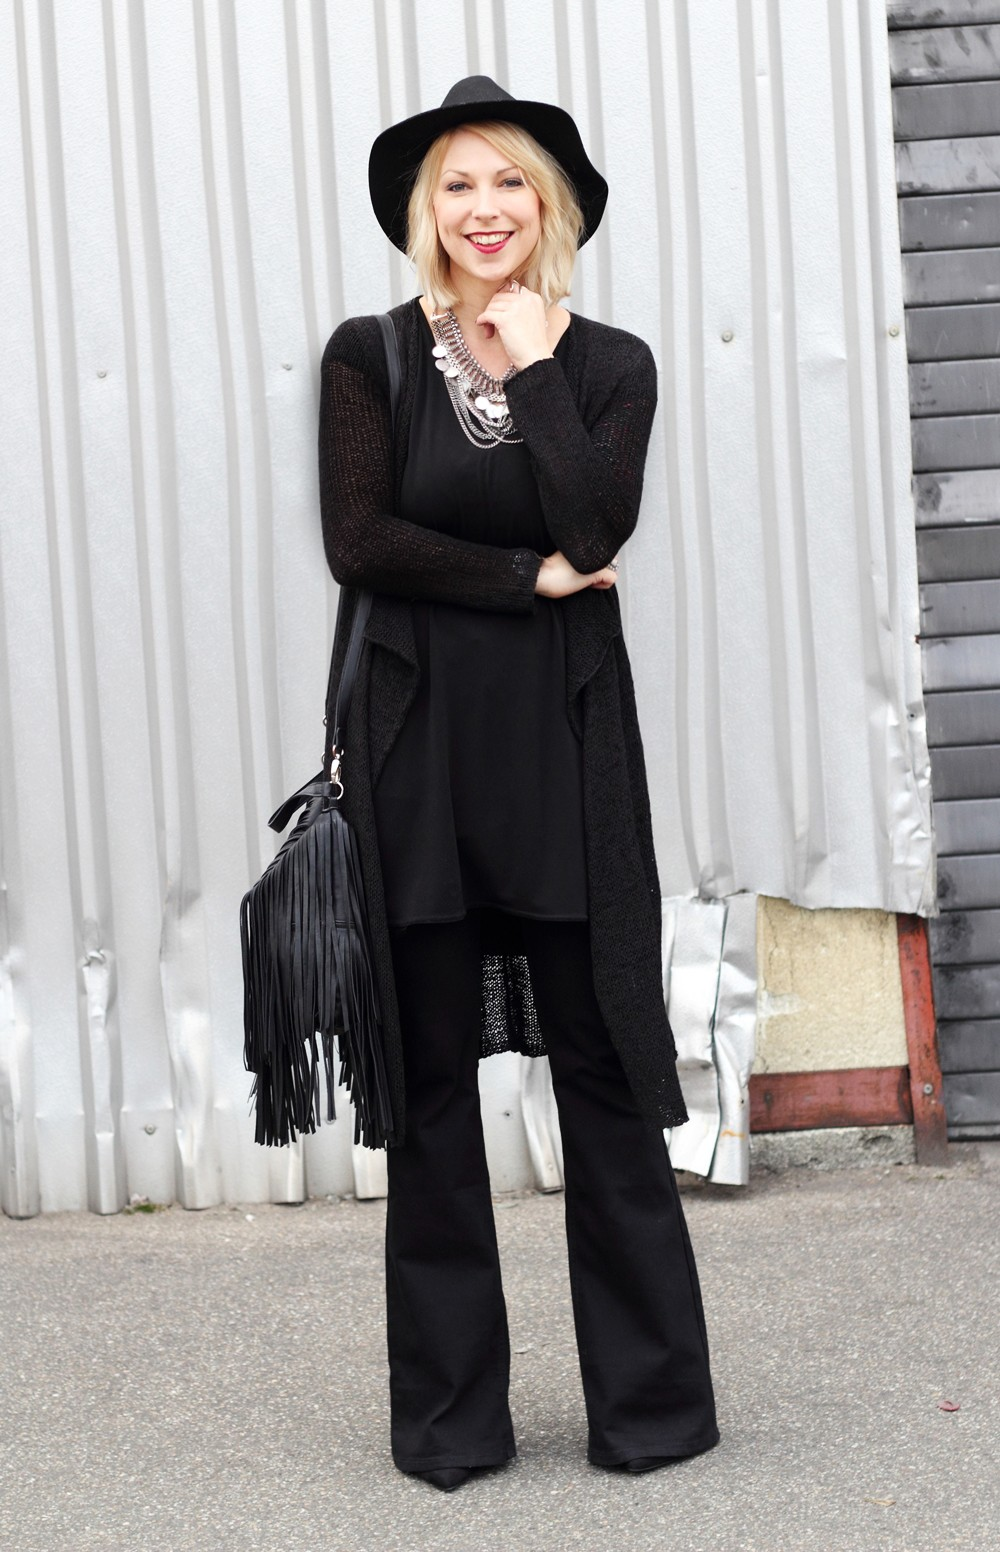 SchFashionblogger Karlsruhe Outfit all in black Flared Jeans Cardigan Hut Fransentasche Kleid 5